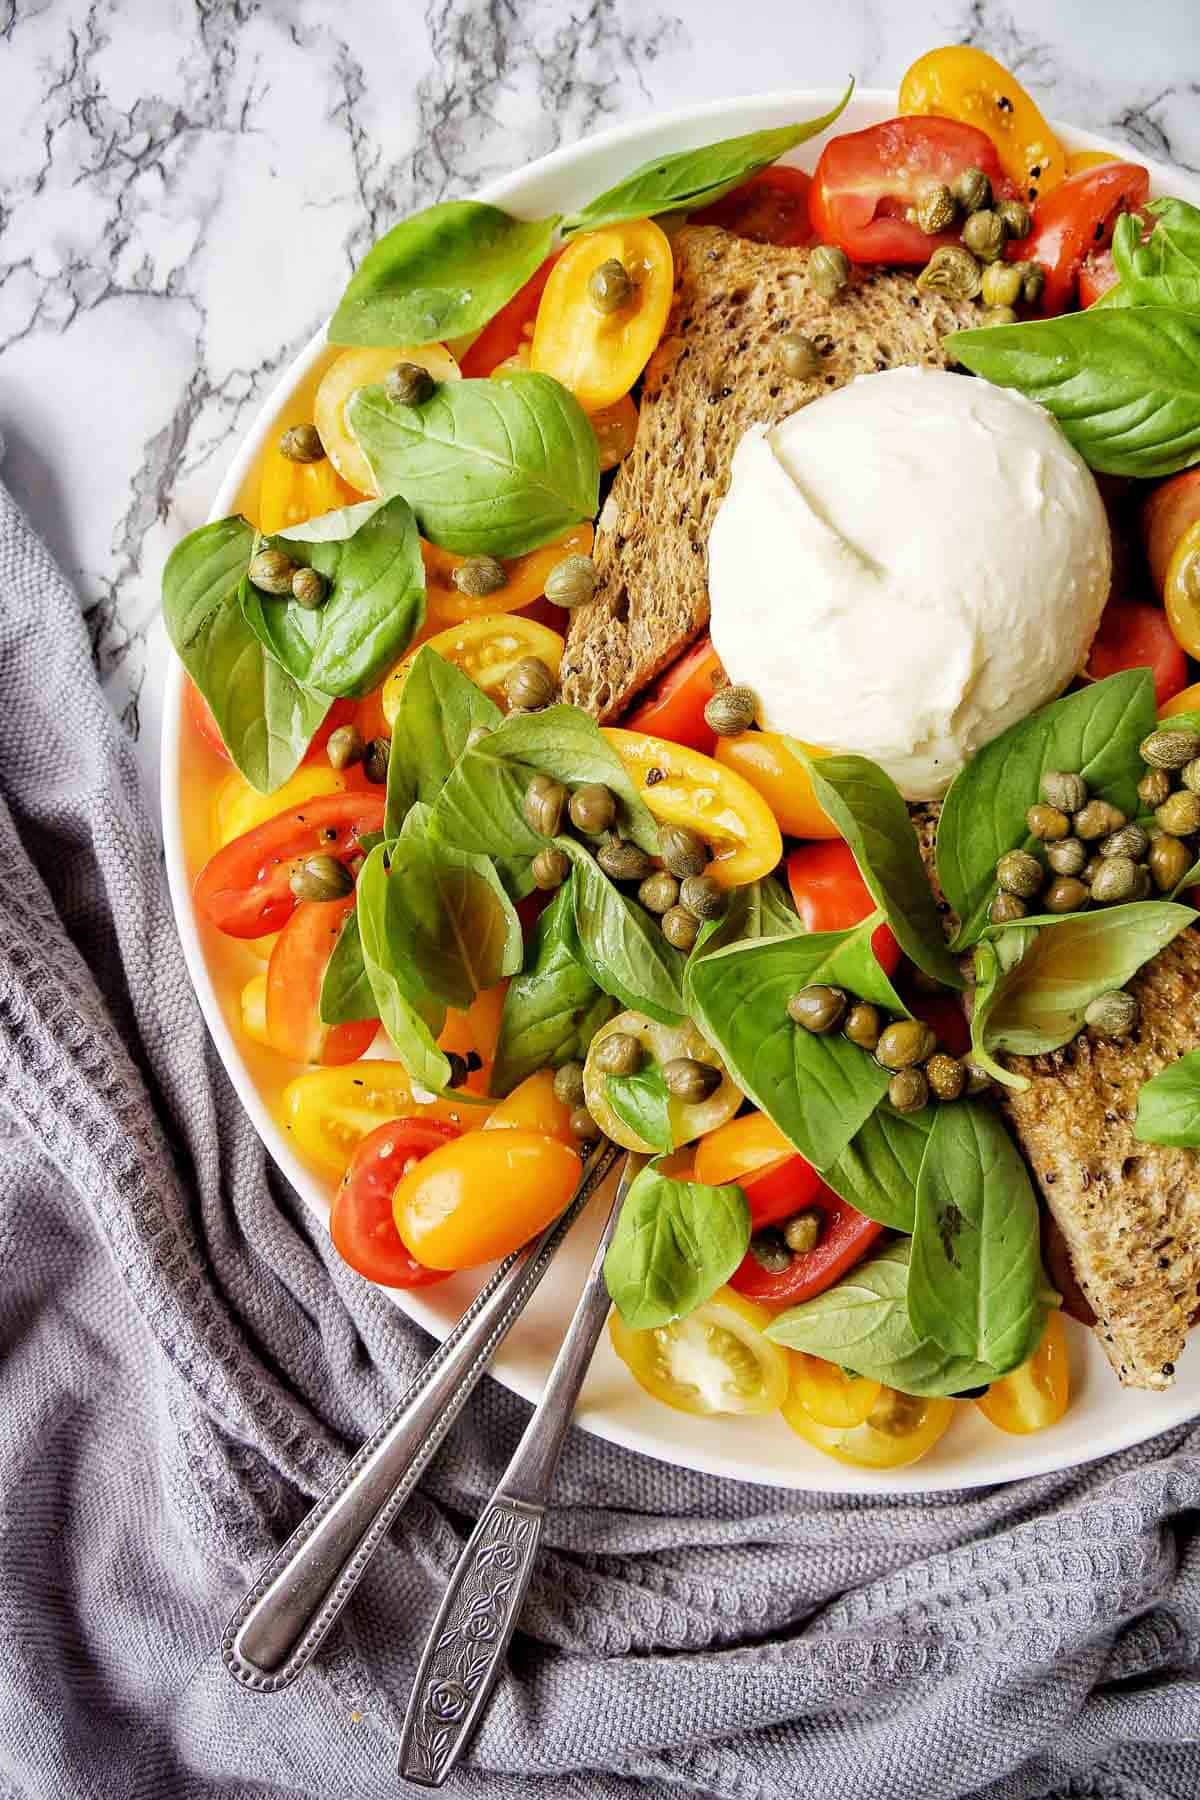 Burrata Salad on a white plate with serving utensils